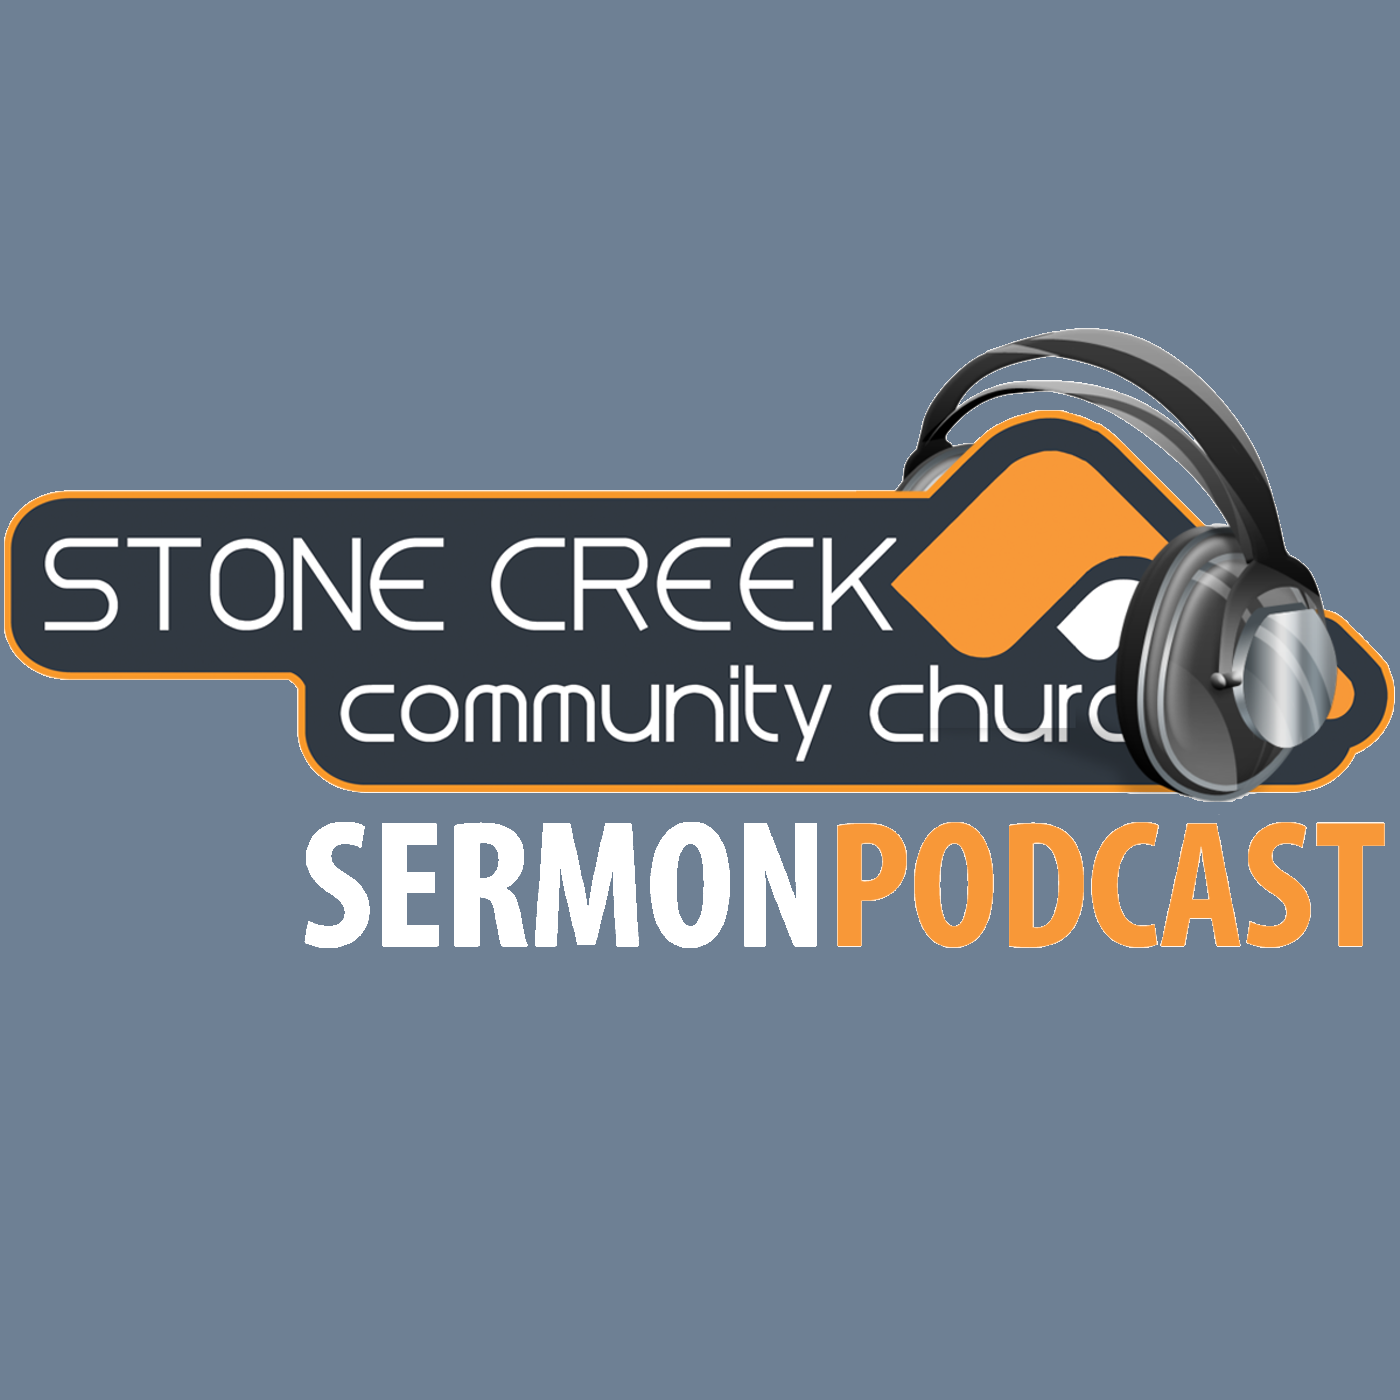 Stone Creek Community Church Podcast